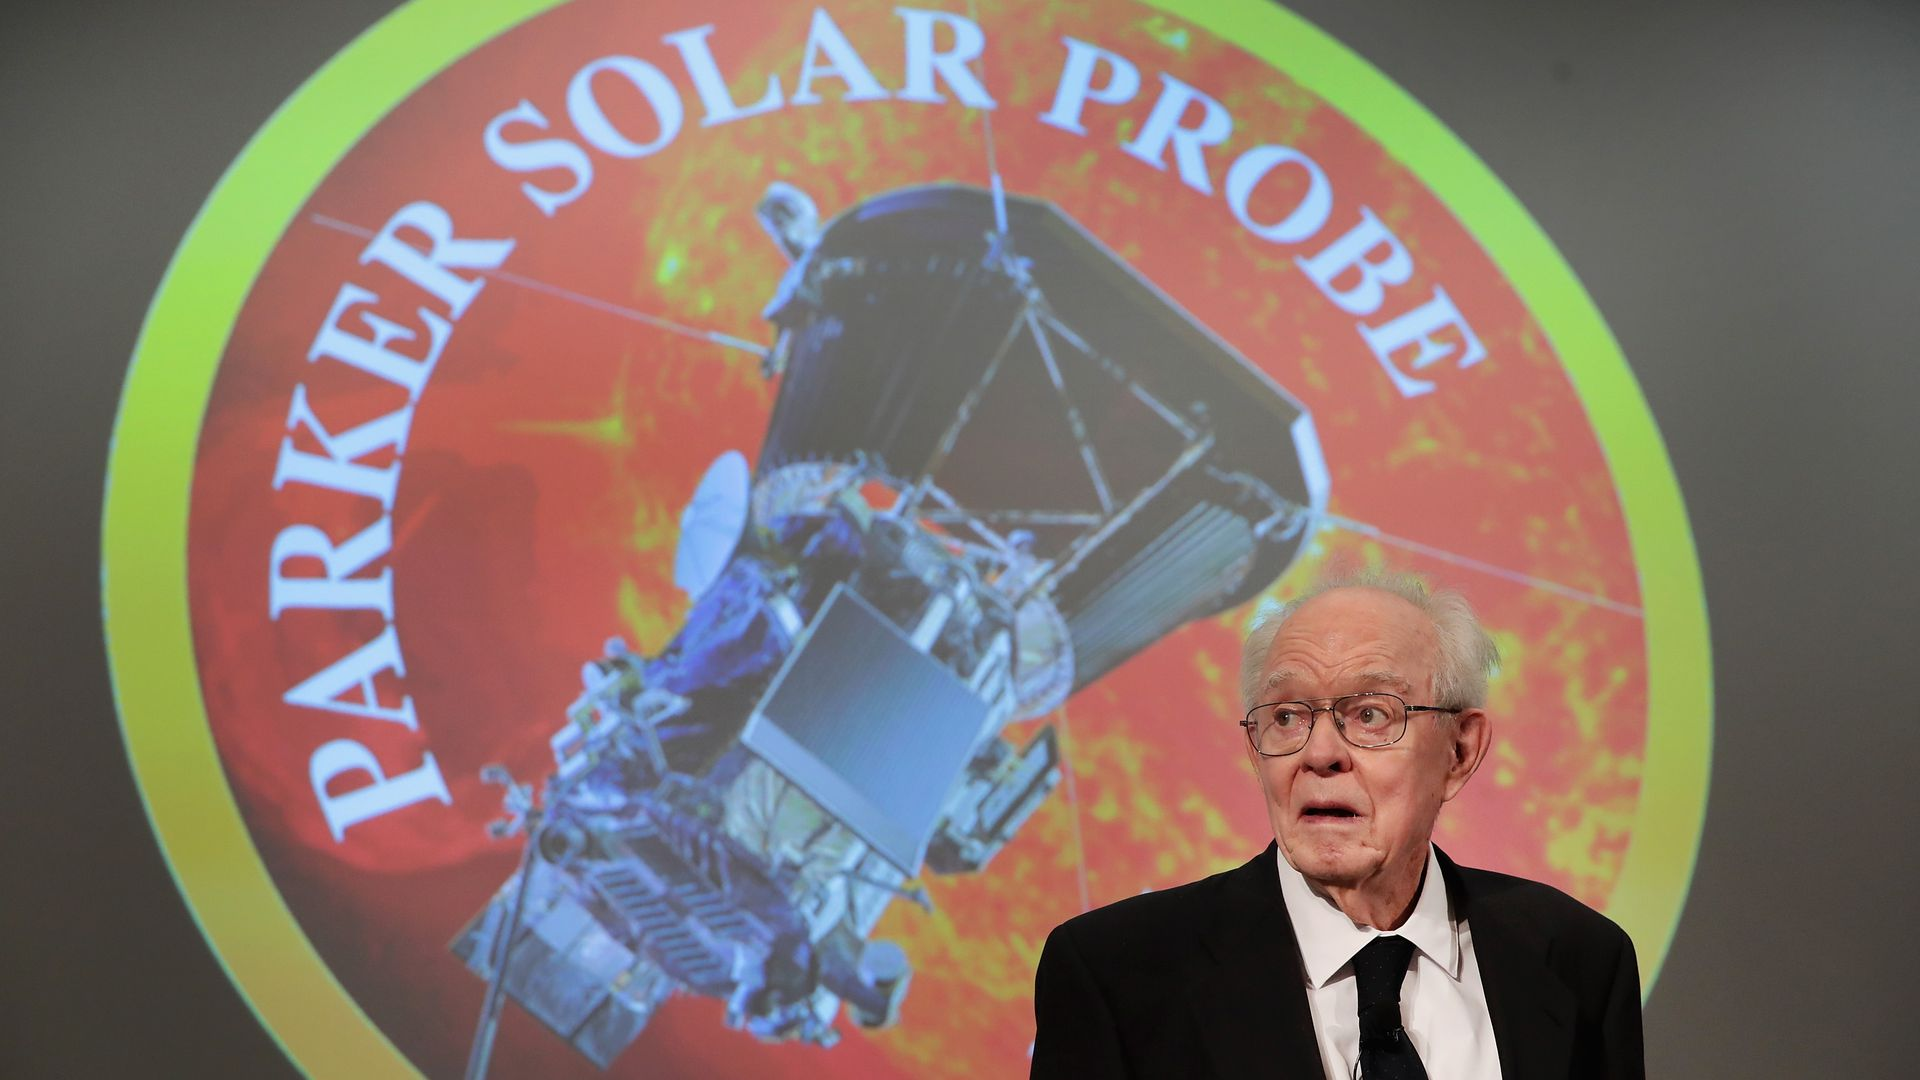 Dr. Eugene Parker announcing the solar probe